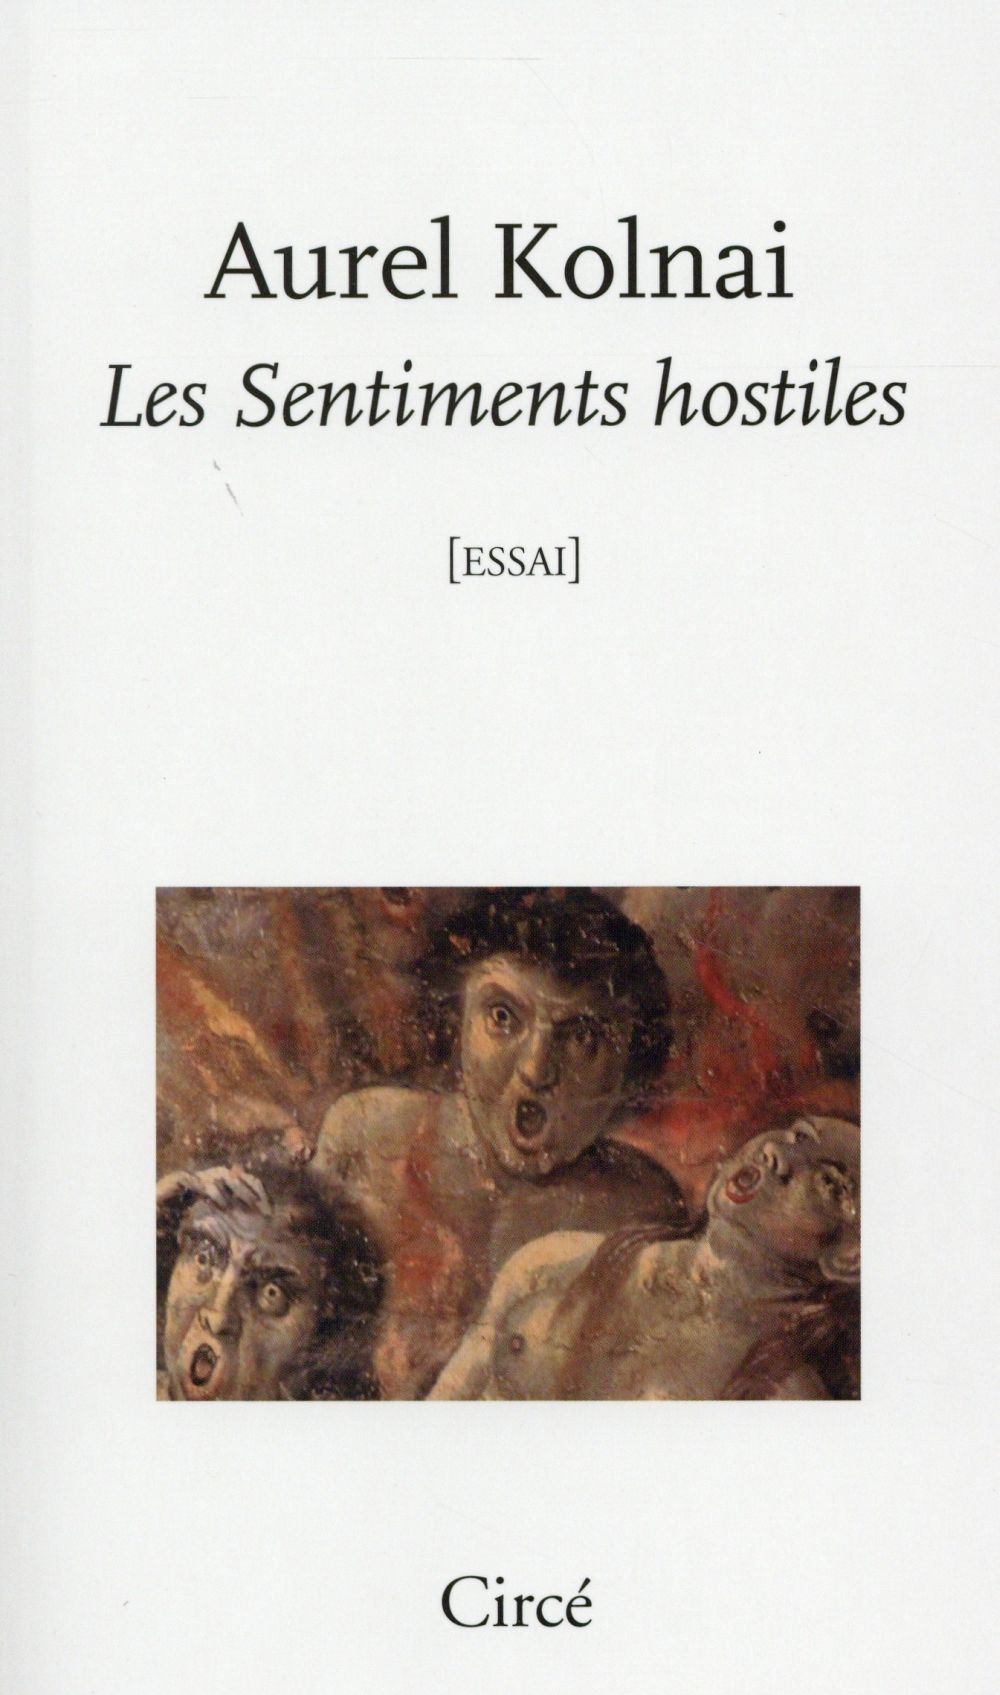 Les sentiments hostiles